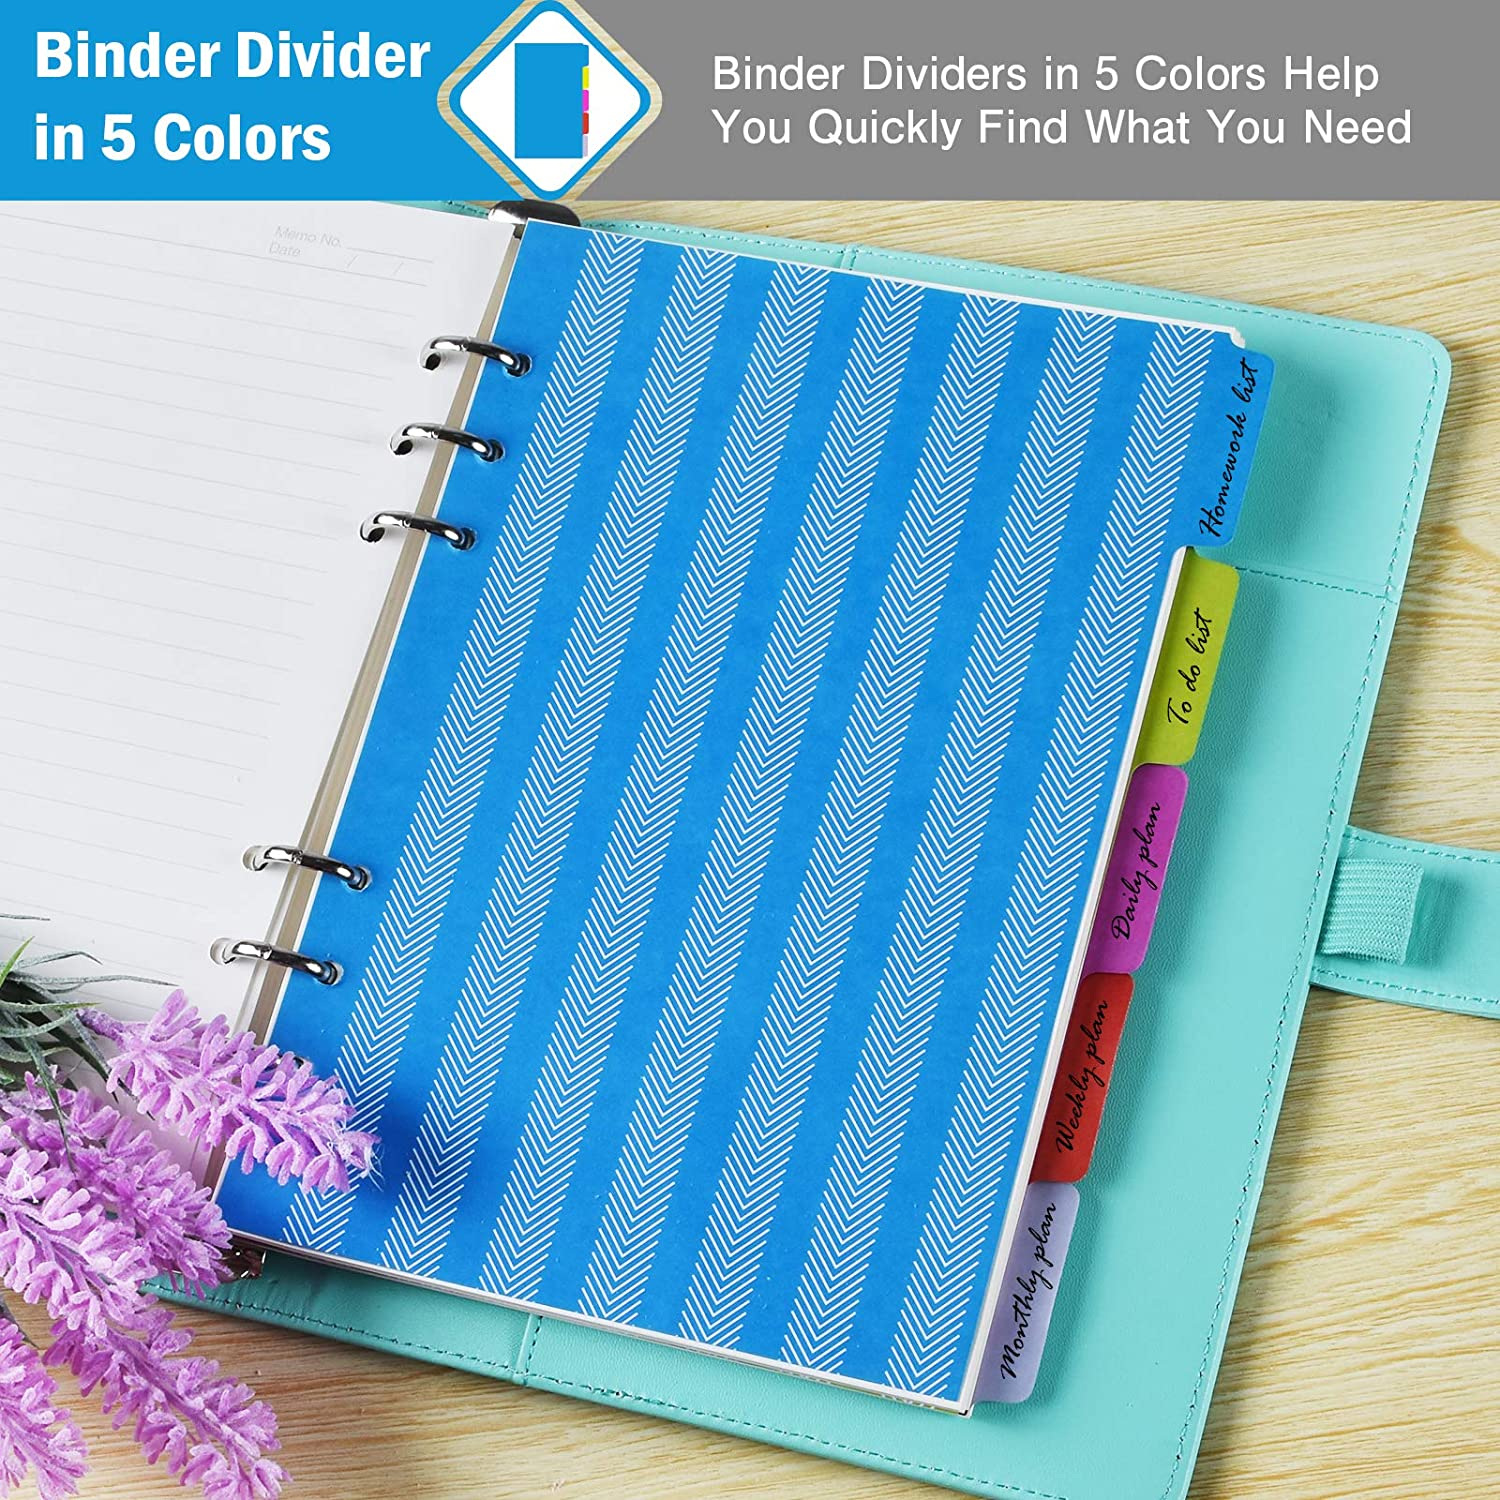 A6 Refill Paper 160 Pieces Index Tabs with Ruler 3 Pack 6 Ring Planner Binder refillable 5pcs Binder Dividers Personal Planner Inserts for Journal Notebook 3pcs Binder Pockets